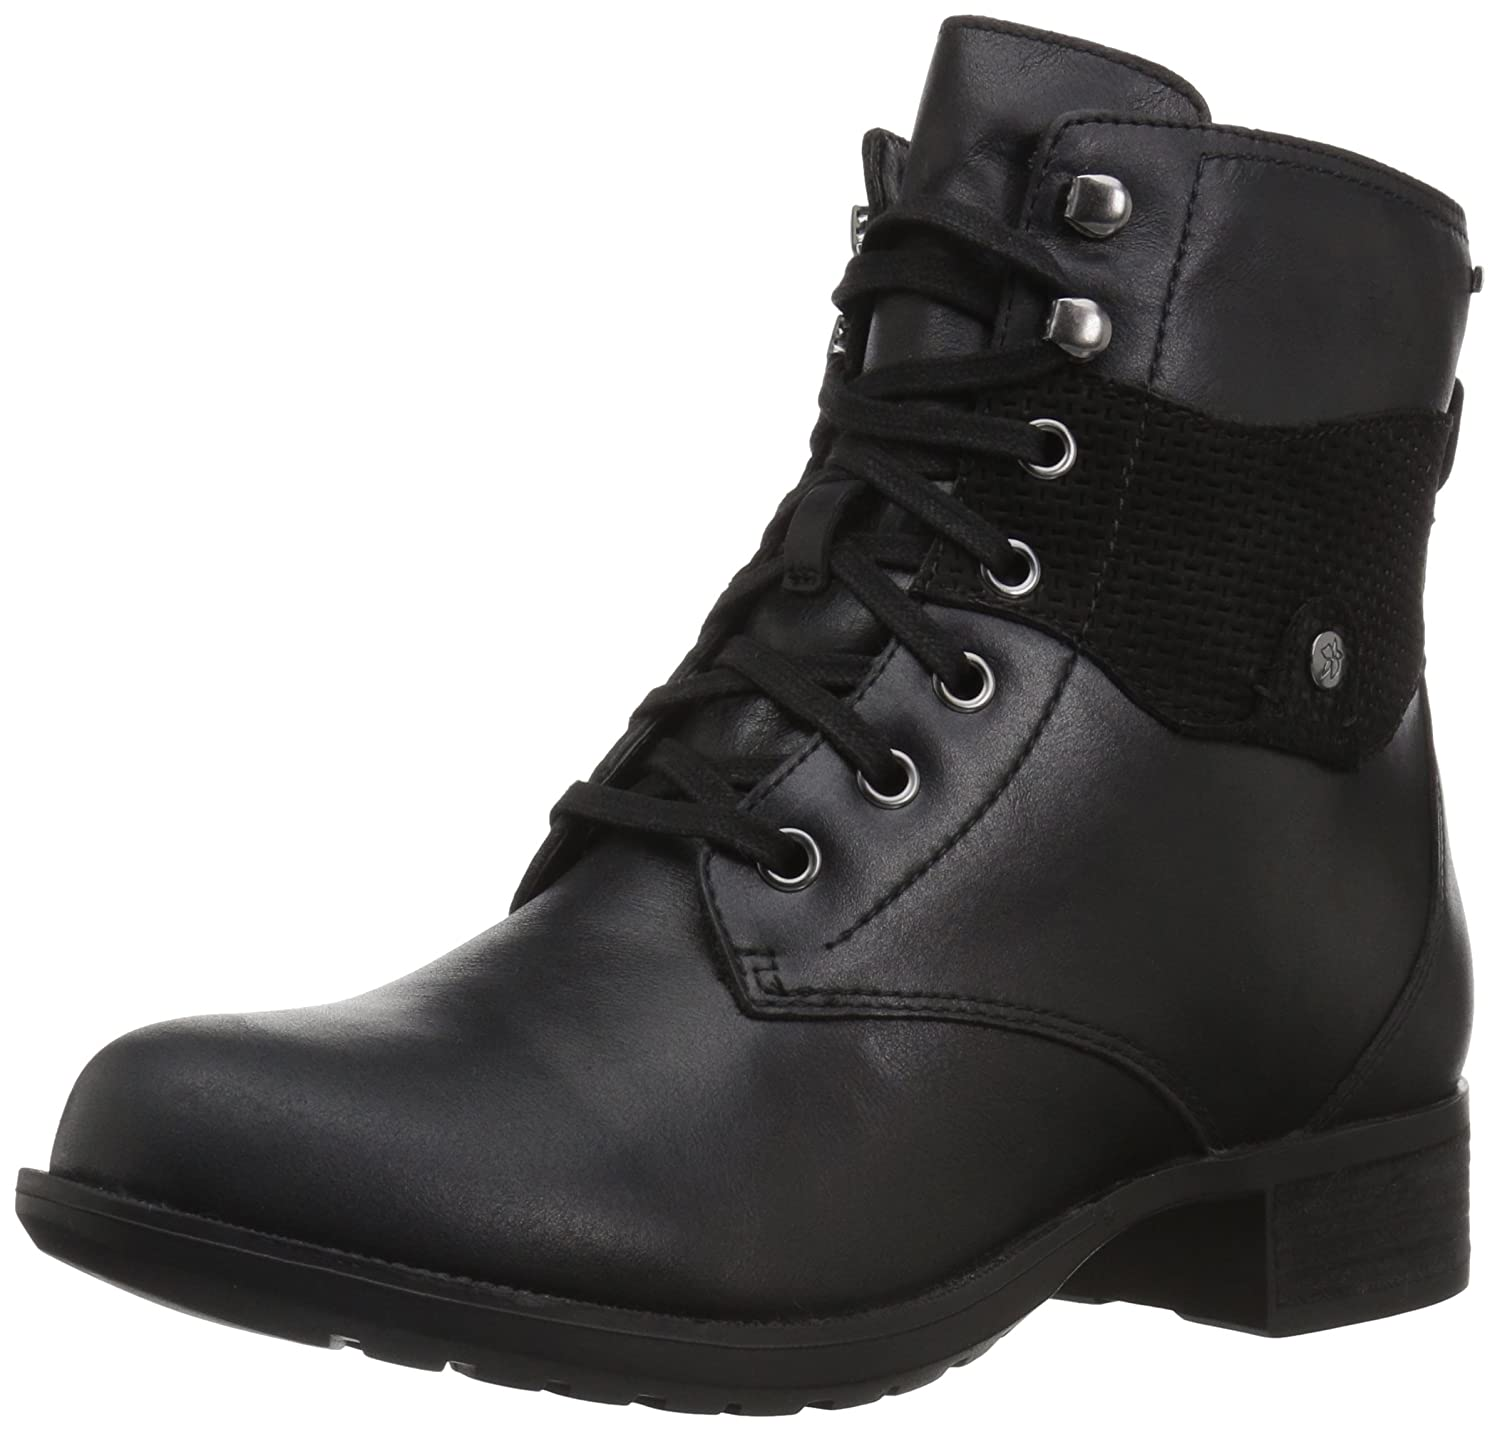 Rockport Women's Copley Lace up Winter Boot B01N26YT9Q 7.5 W US|Black Leather